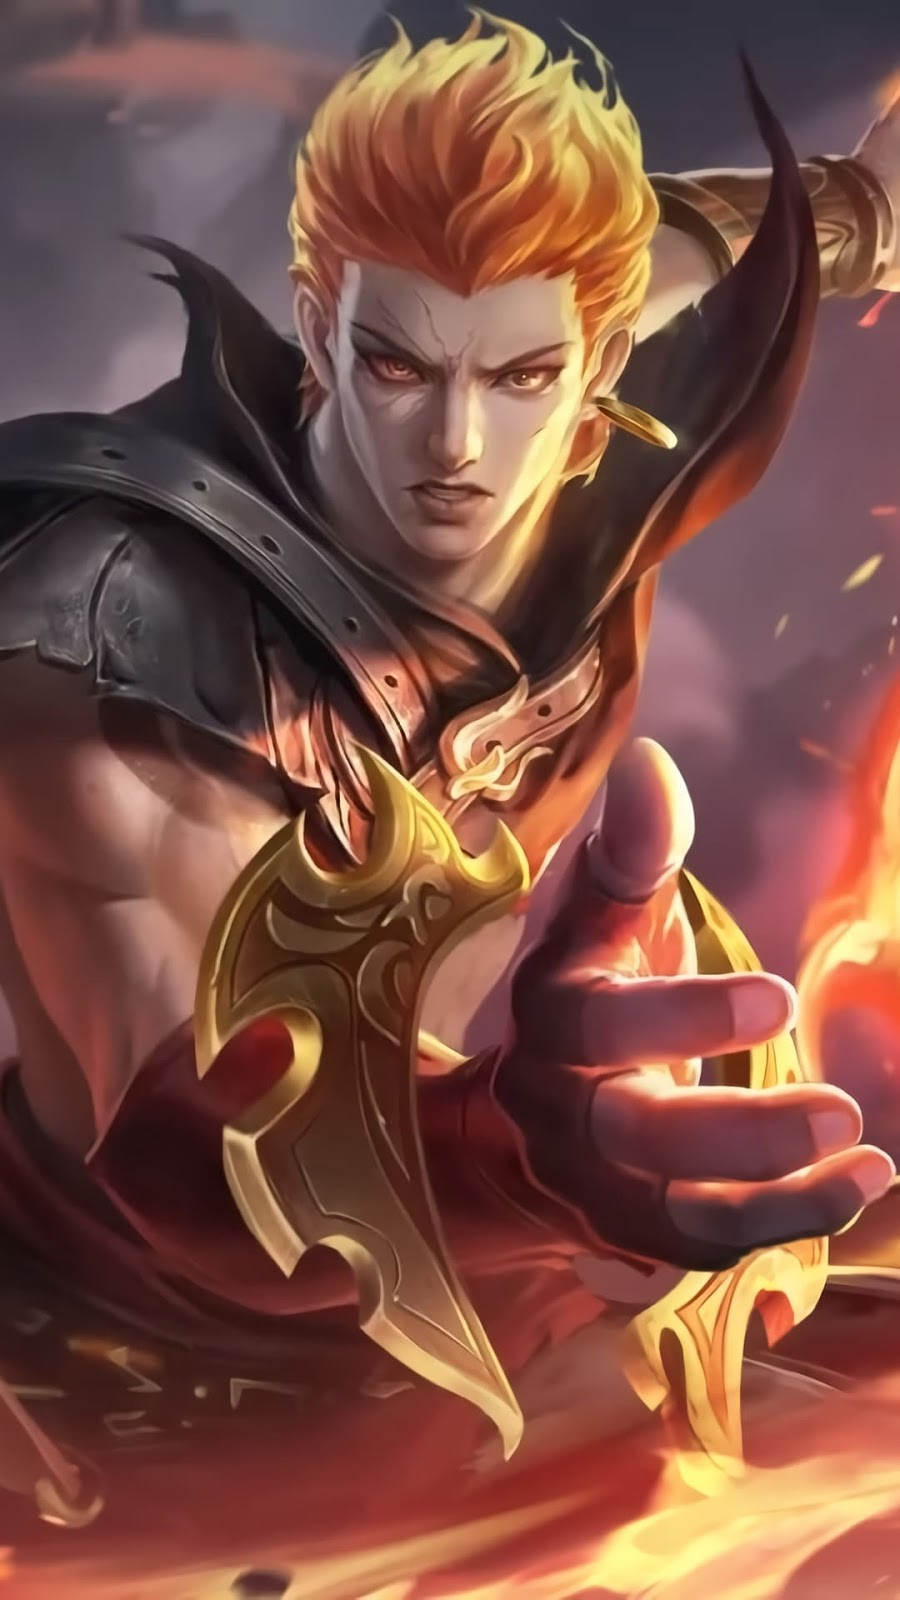 Wallpaper Valir Son of Flames Skin Mobile Legends HD for Android and iOS